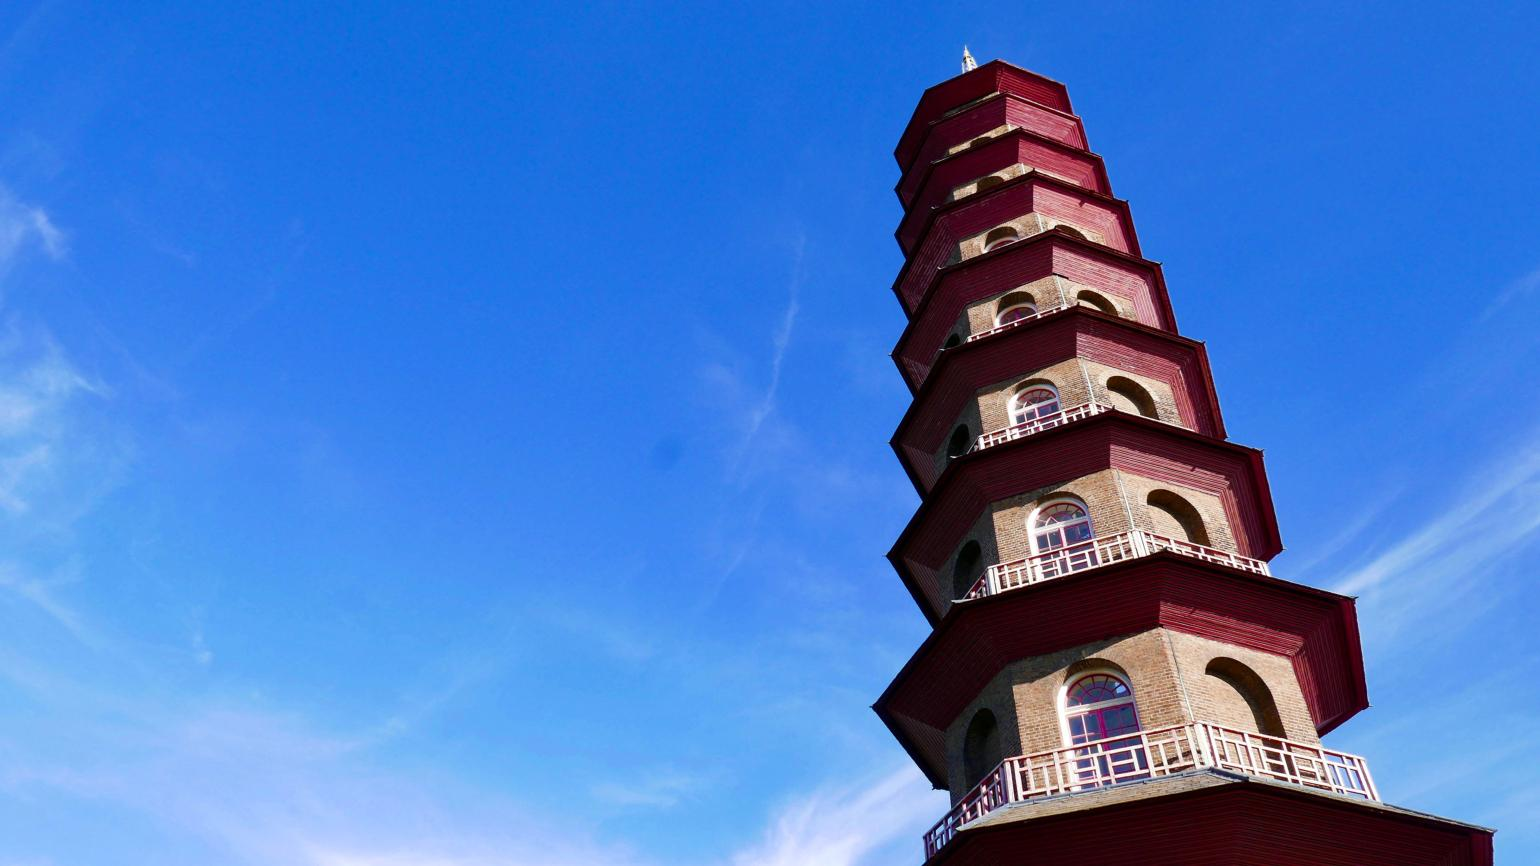 The Great Pagoda soaring against a clear sky